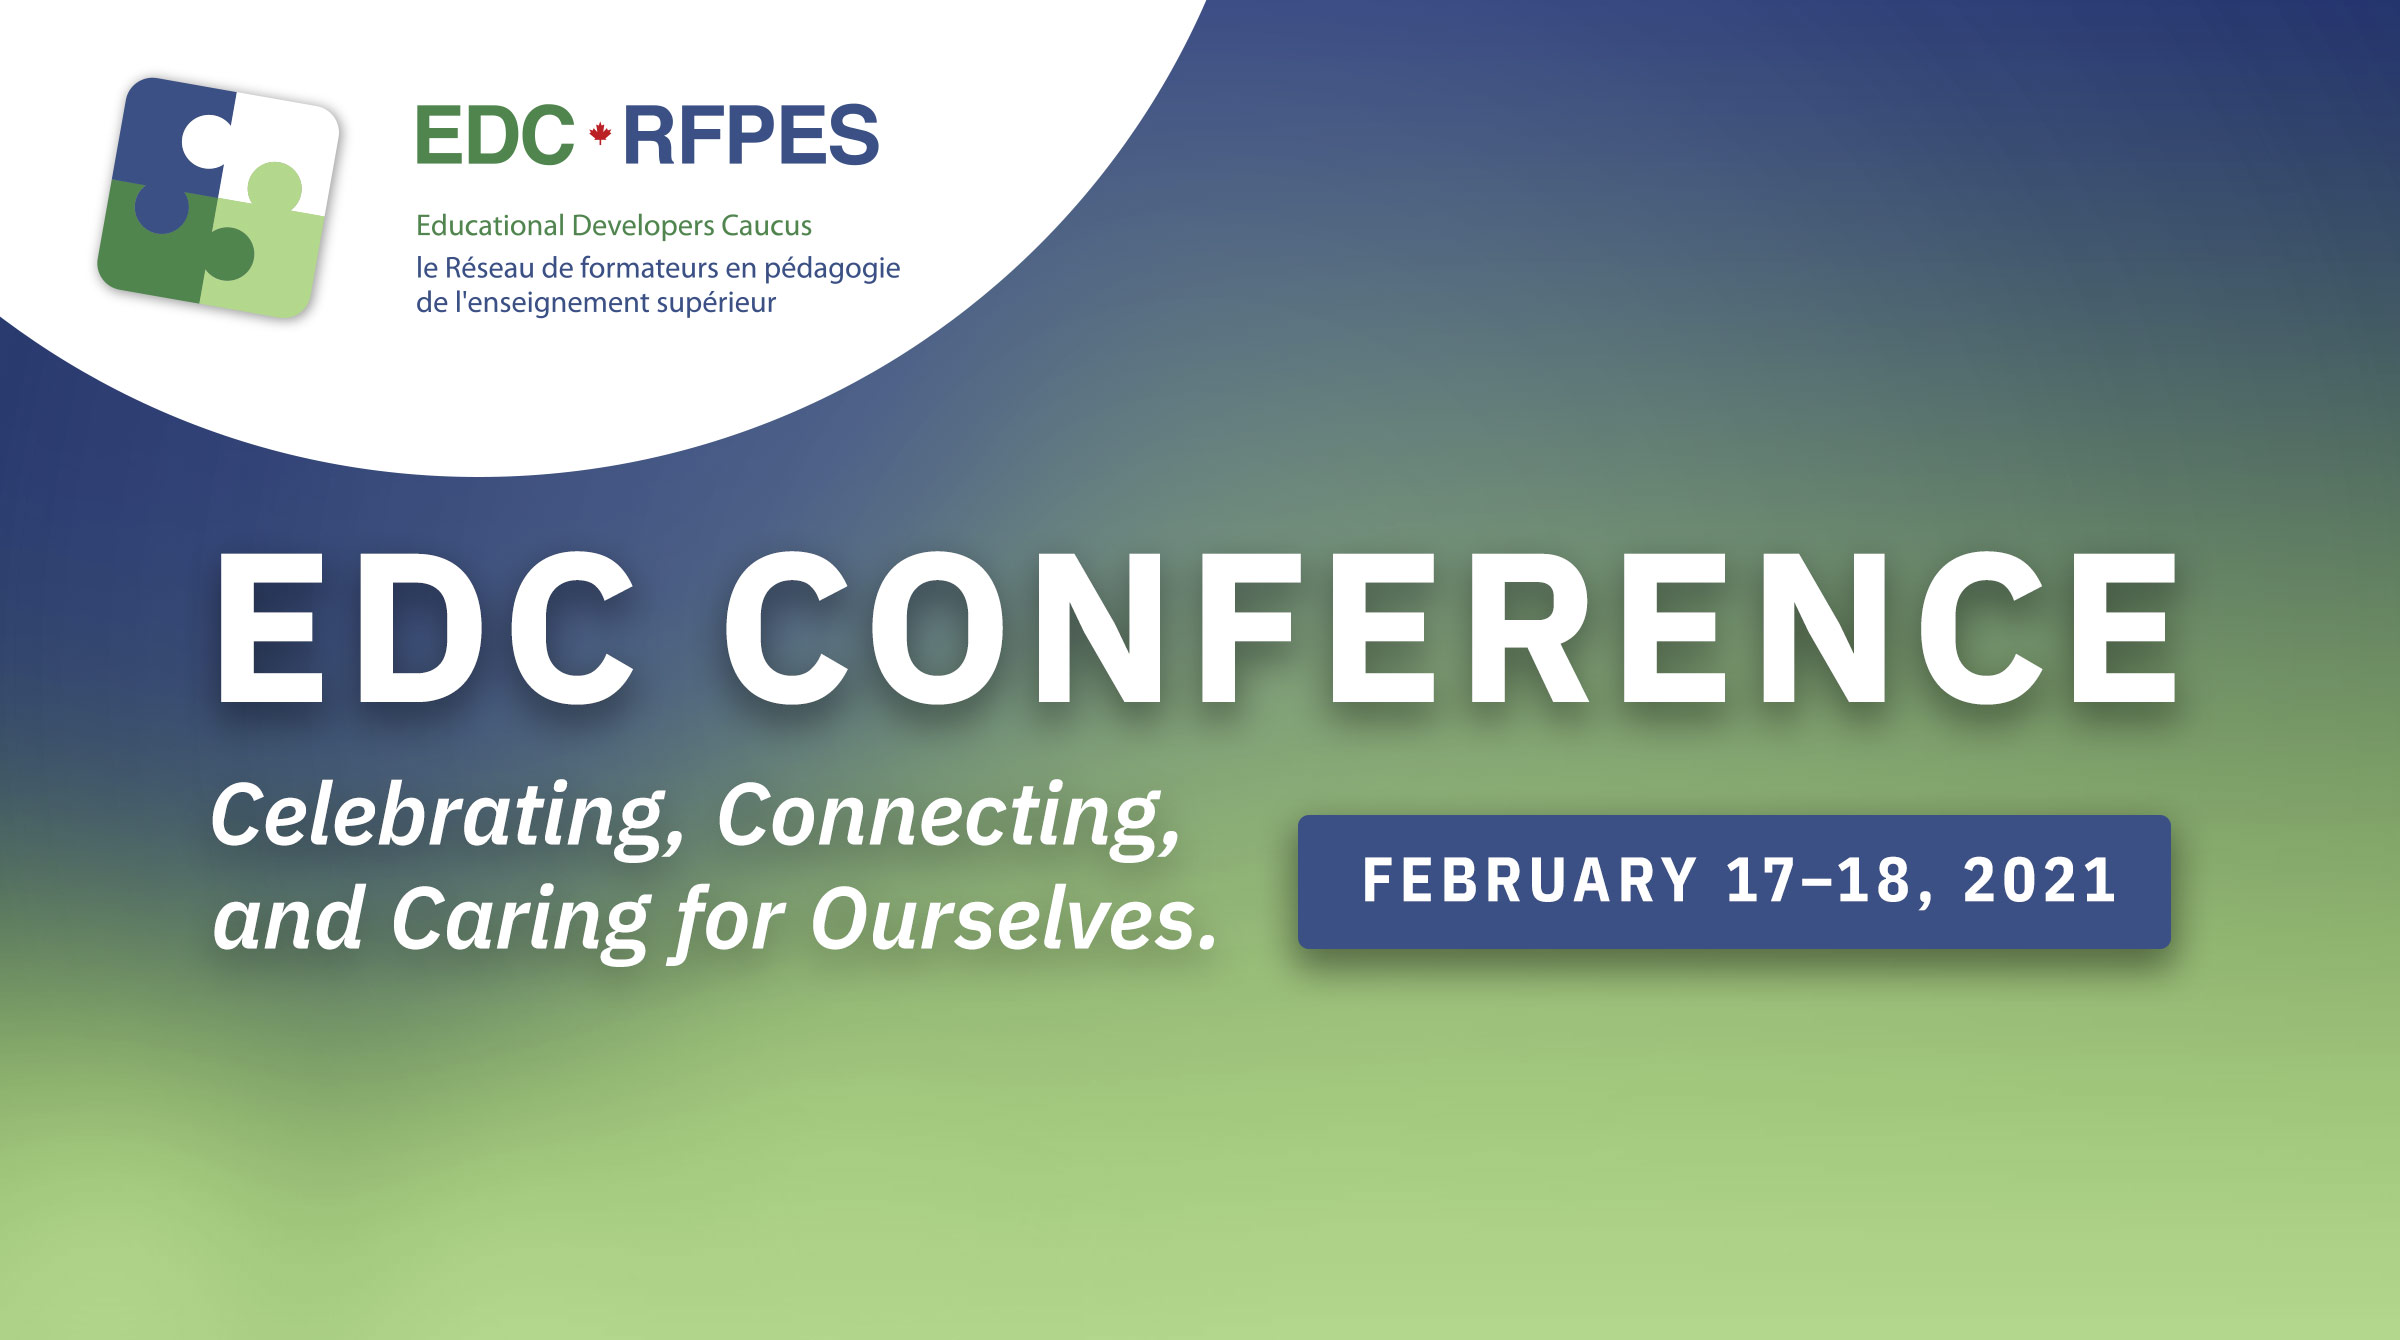 EDC Conference Celebrating, Connecting, and Caring for Ourselves